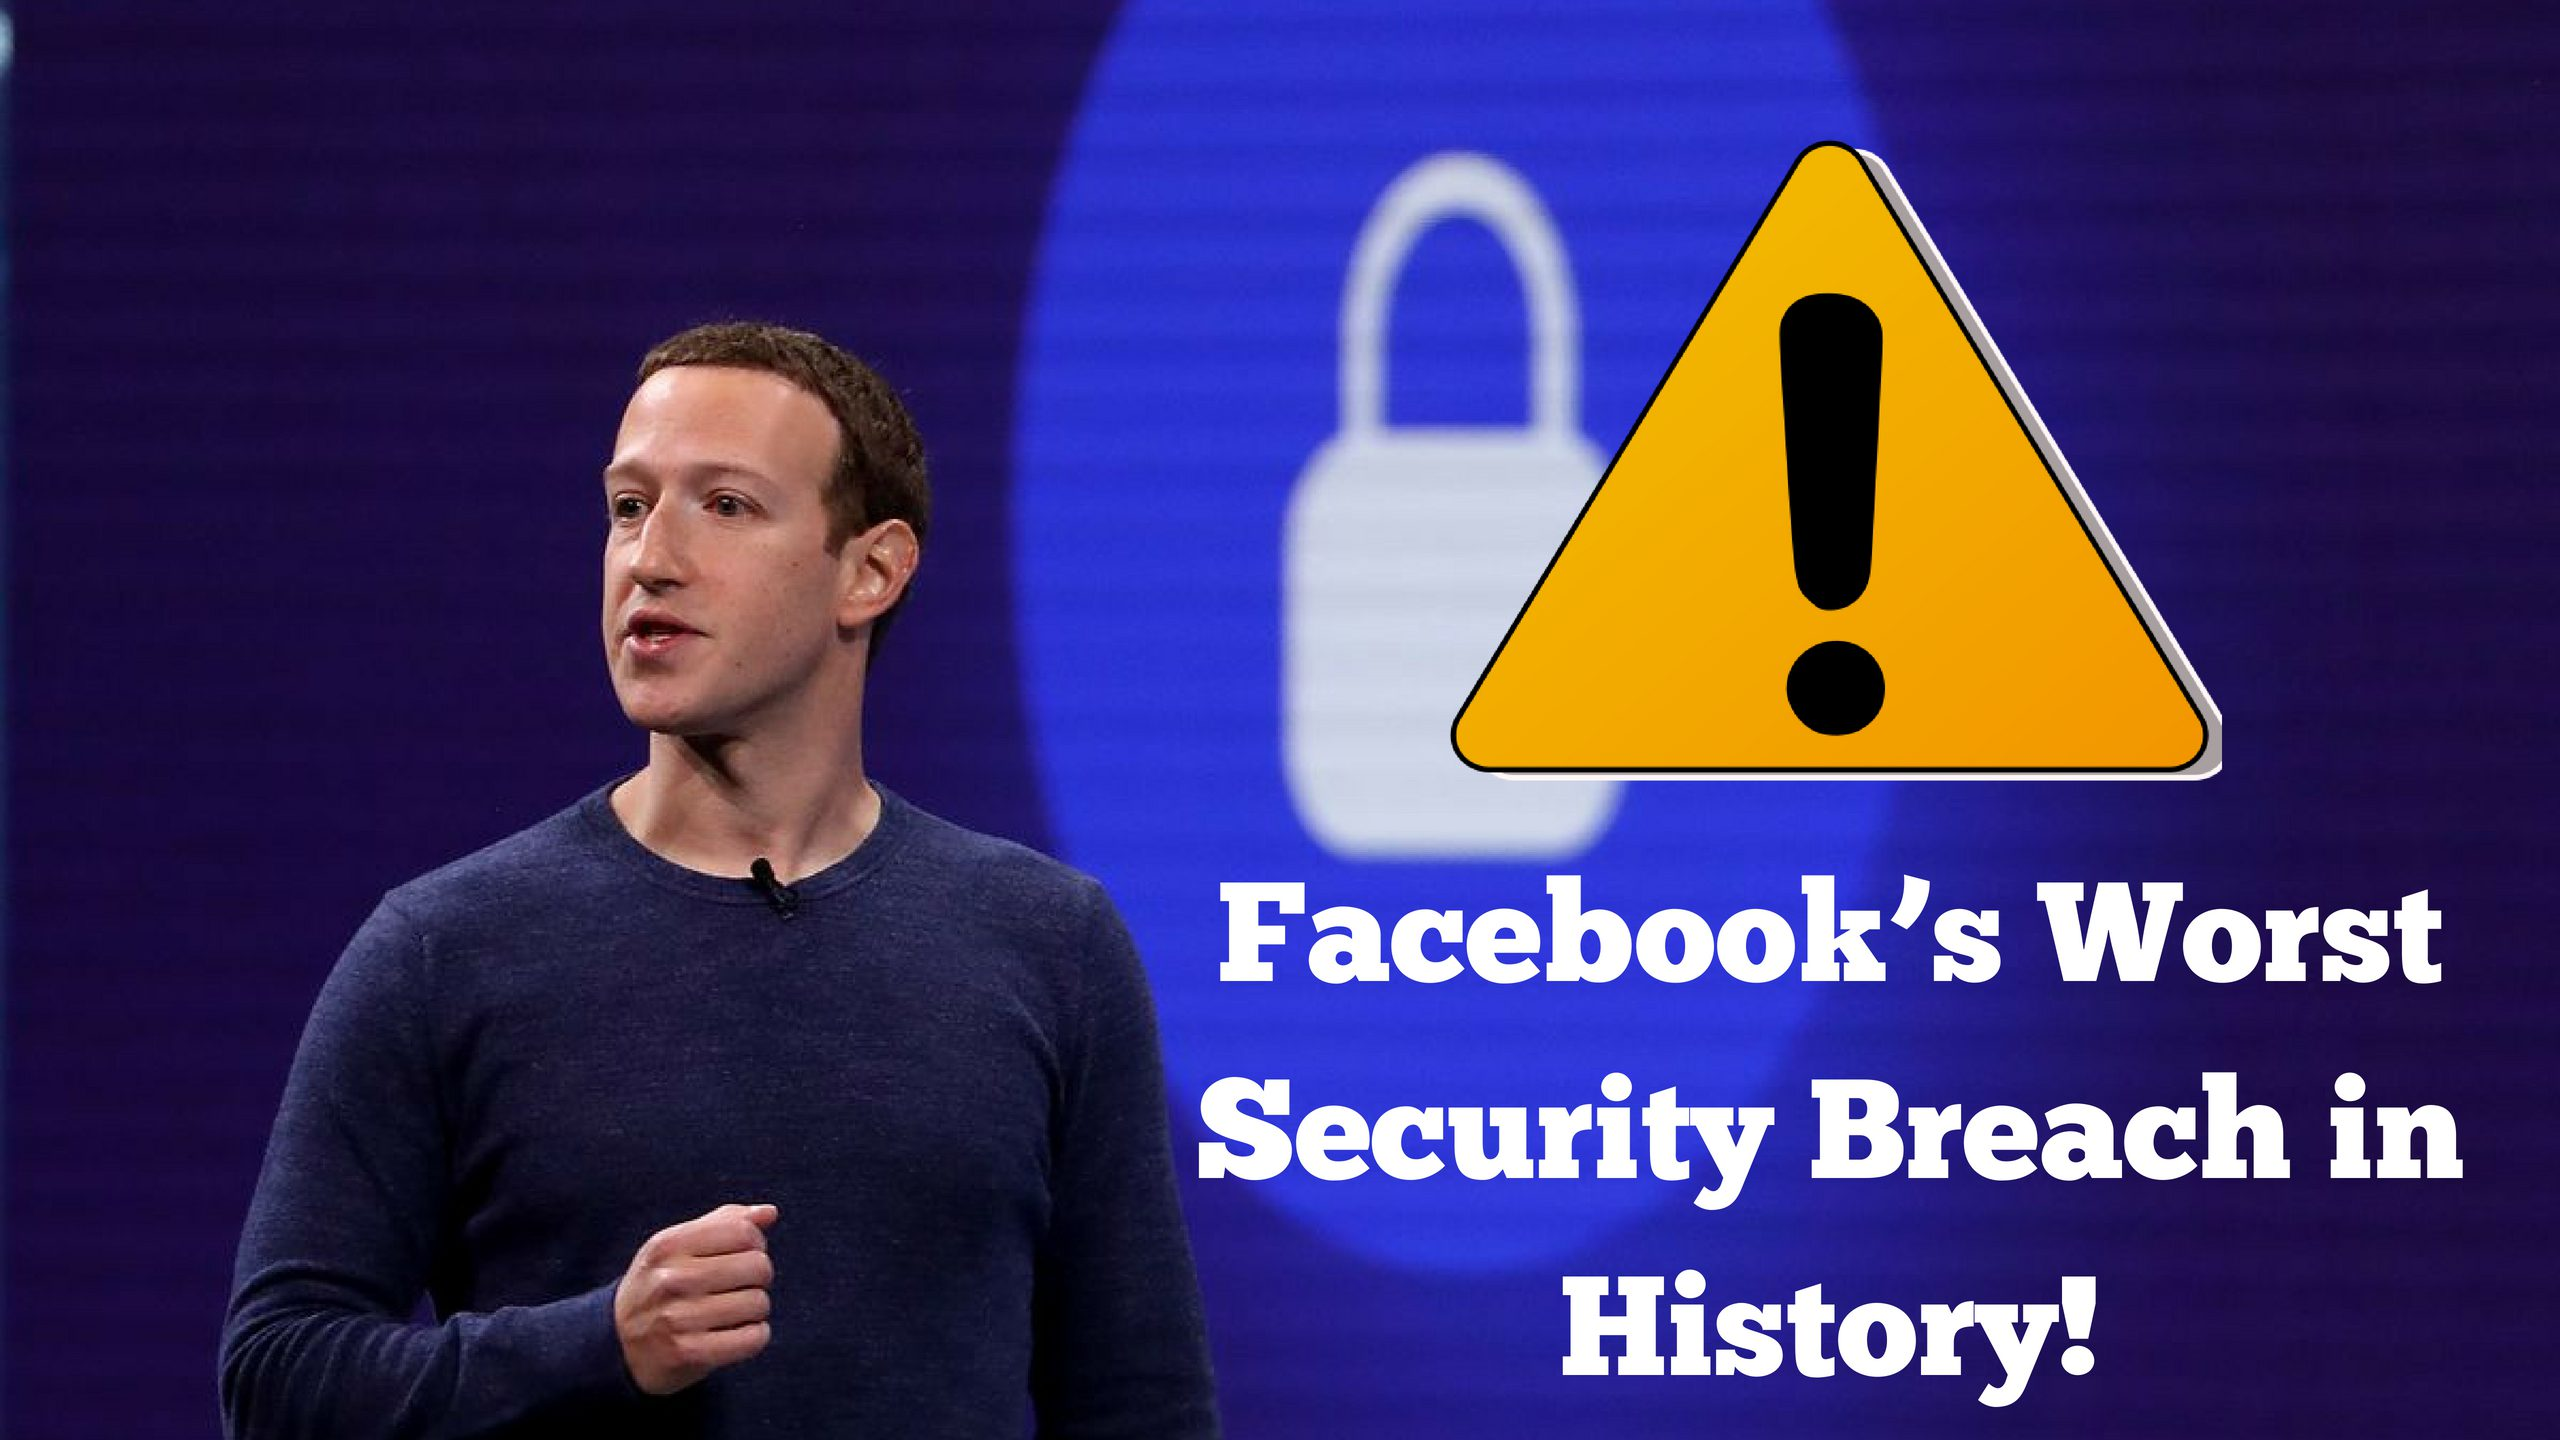 Facebook's Worst Security Breach in History, 50 Million Accounts Or More Hacked